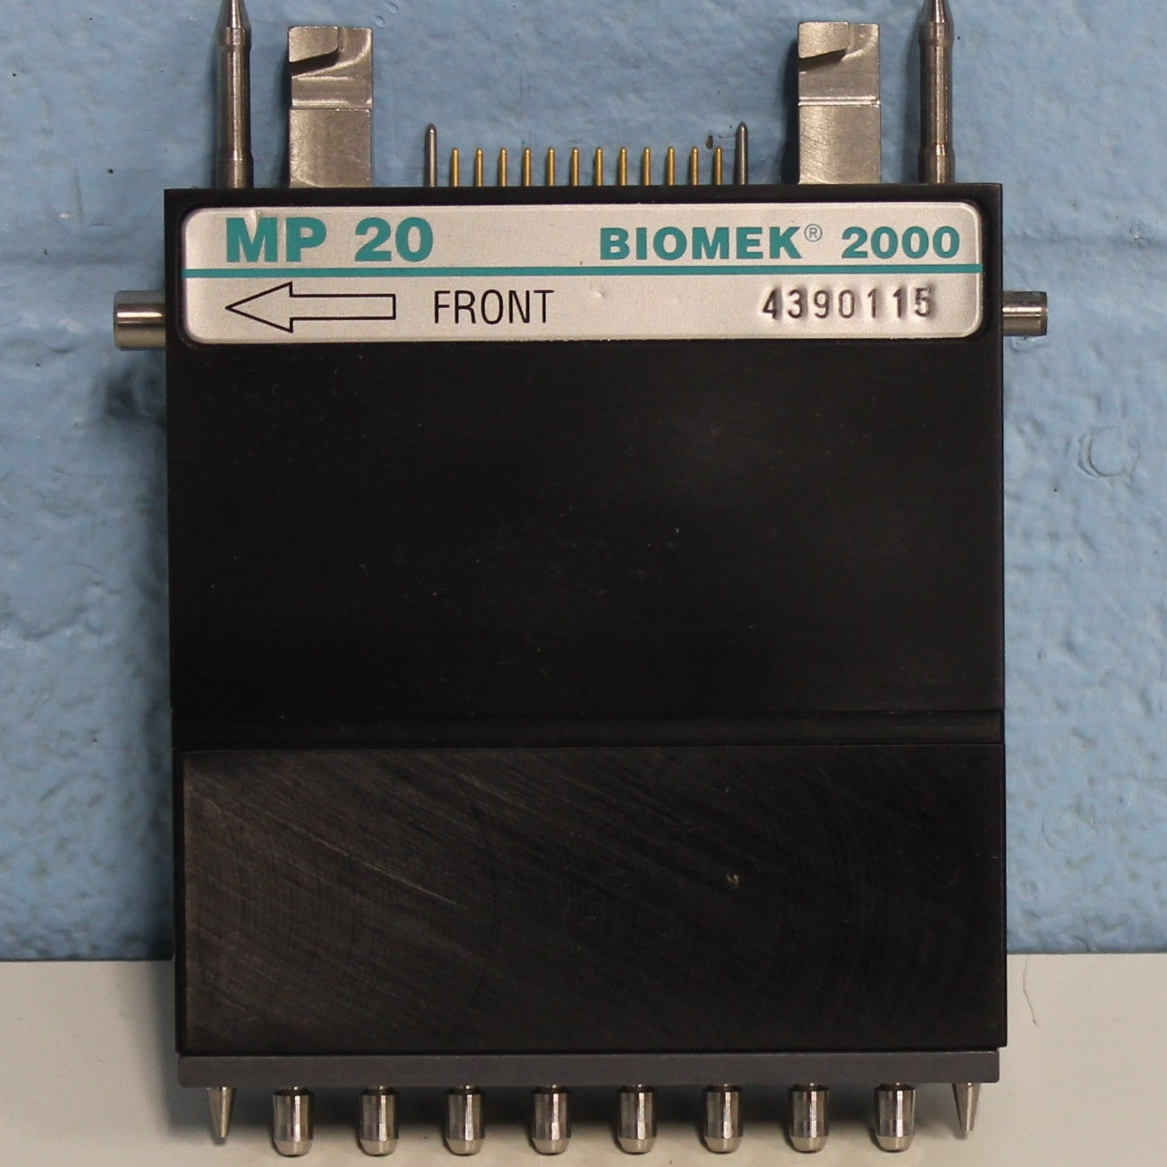 Beckman Coulter MP20 Eight-Tip Tool for the Biomek 2000 Image